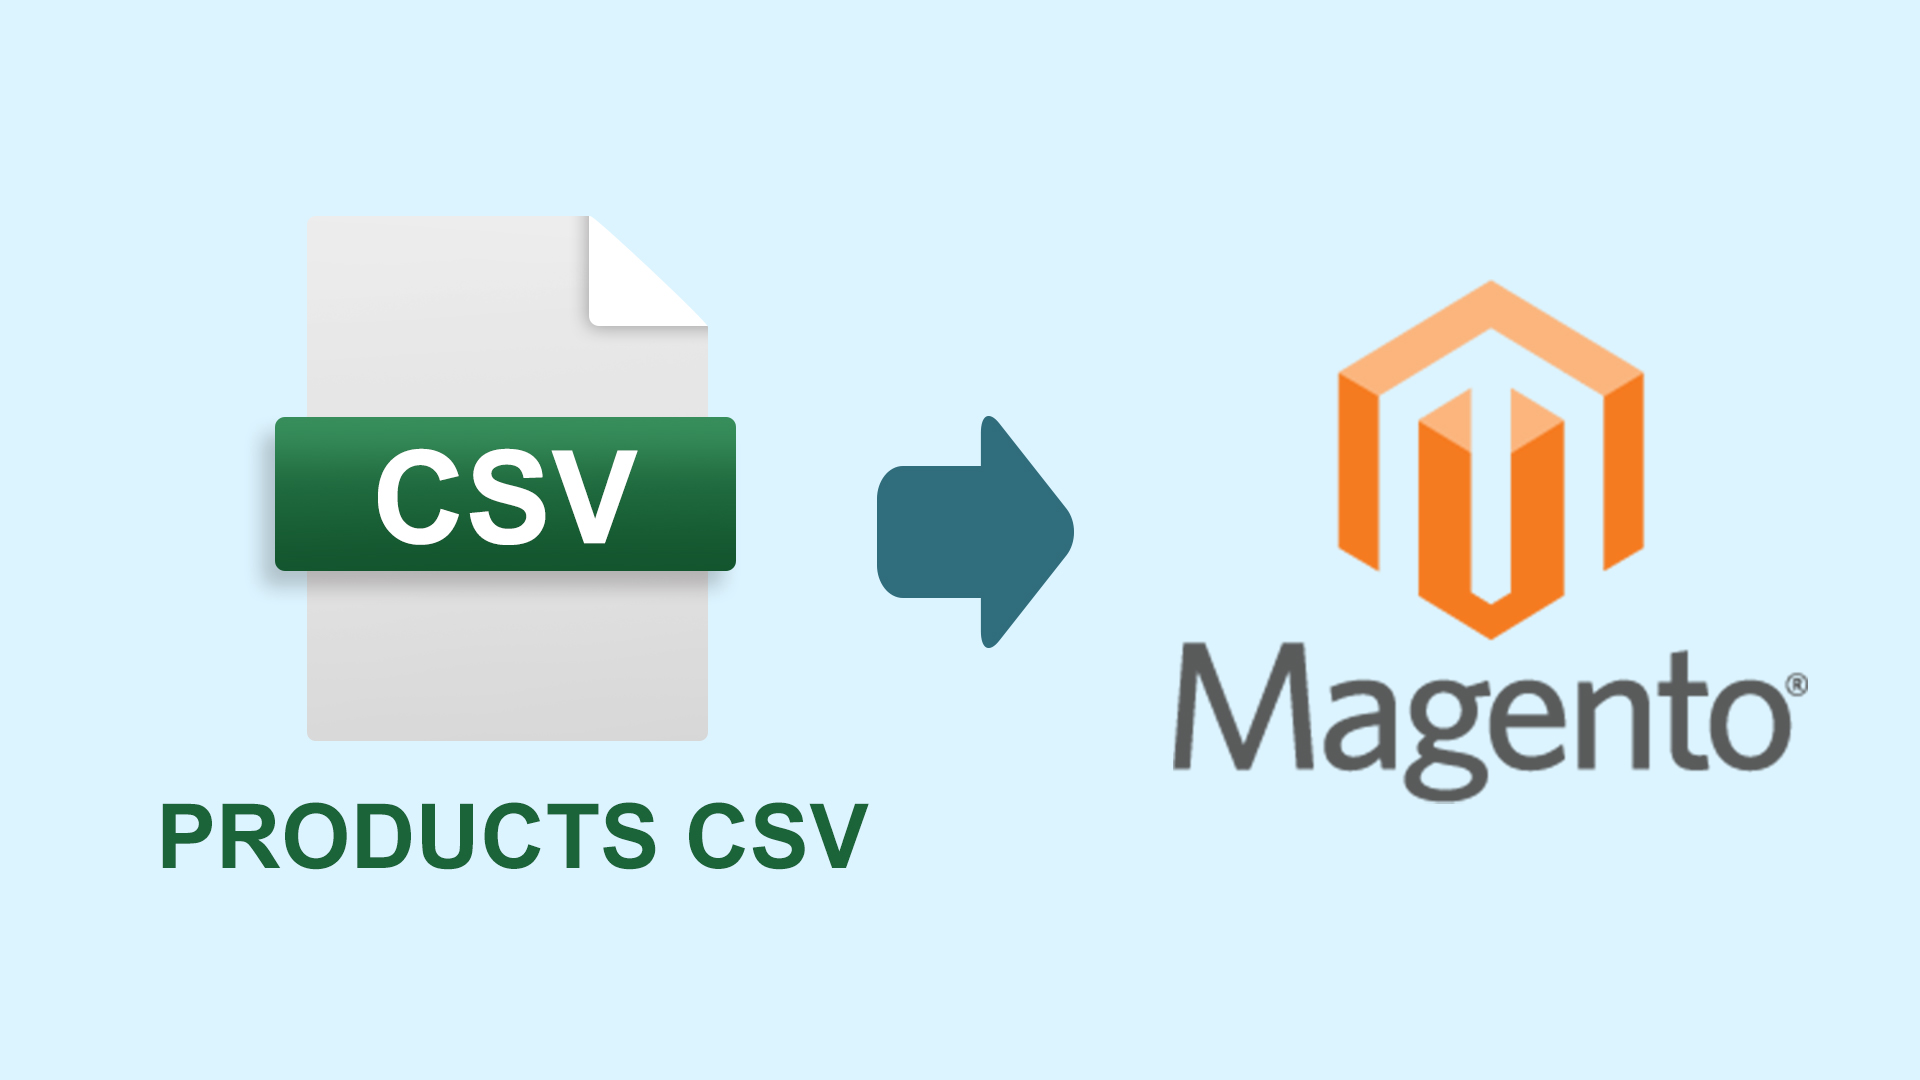 magento csv import article banner image